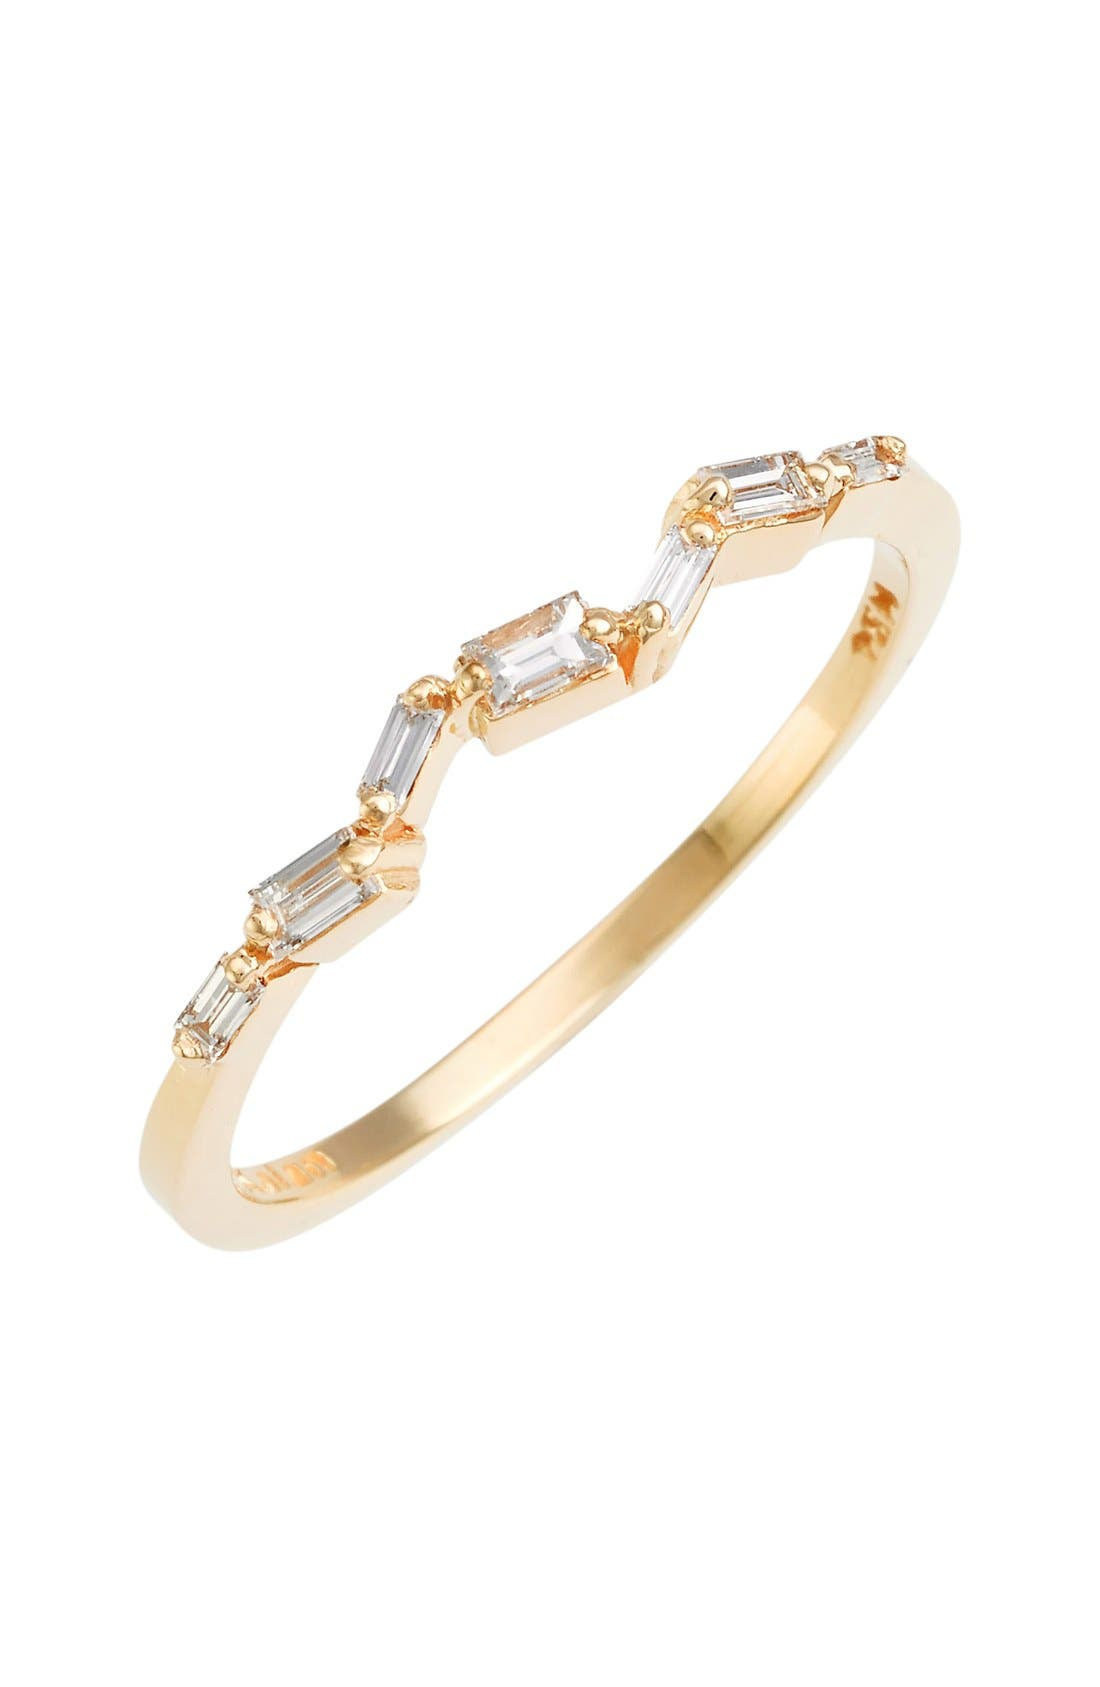 Suzanne Kalan Thin Baguette Stacking Band Ring